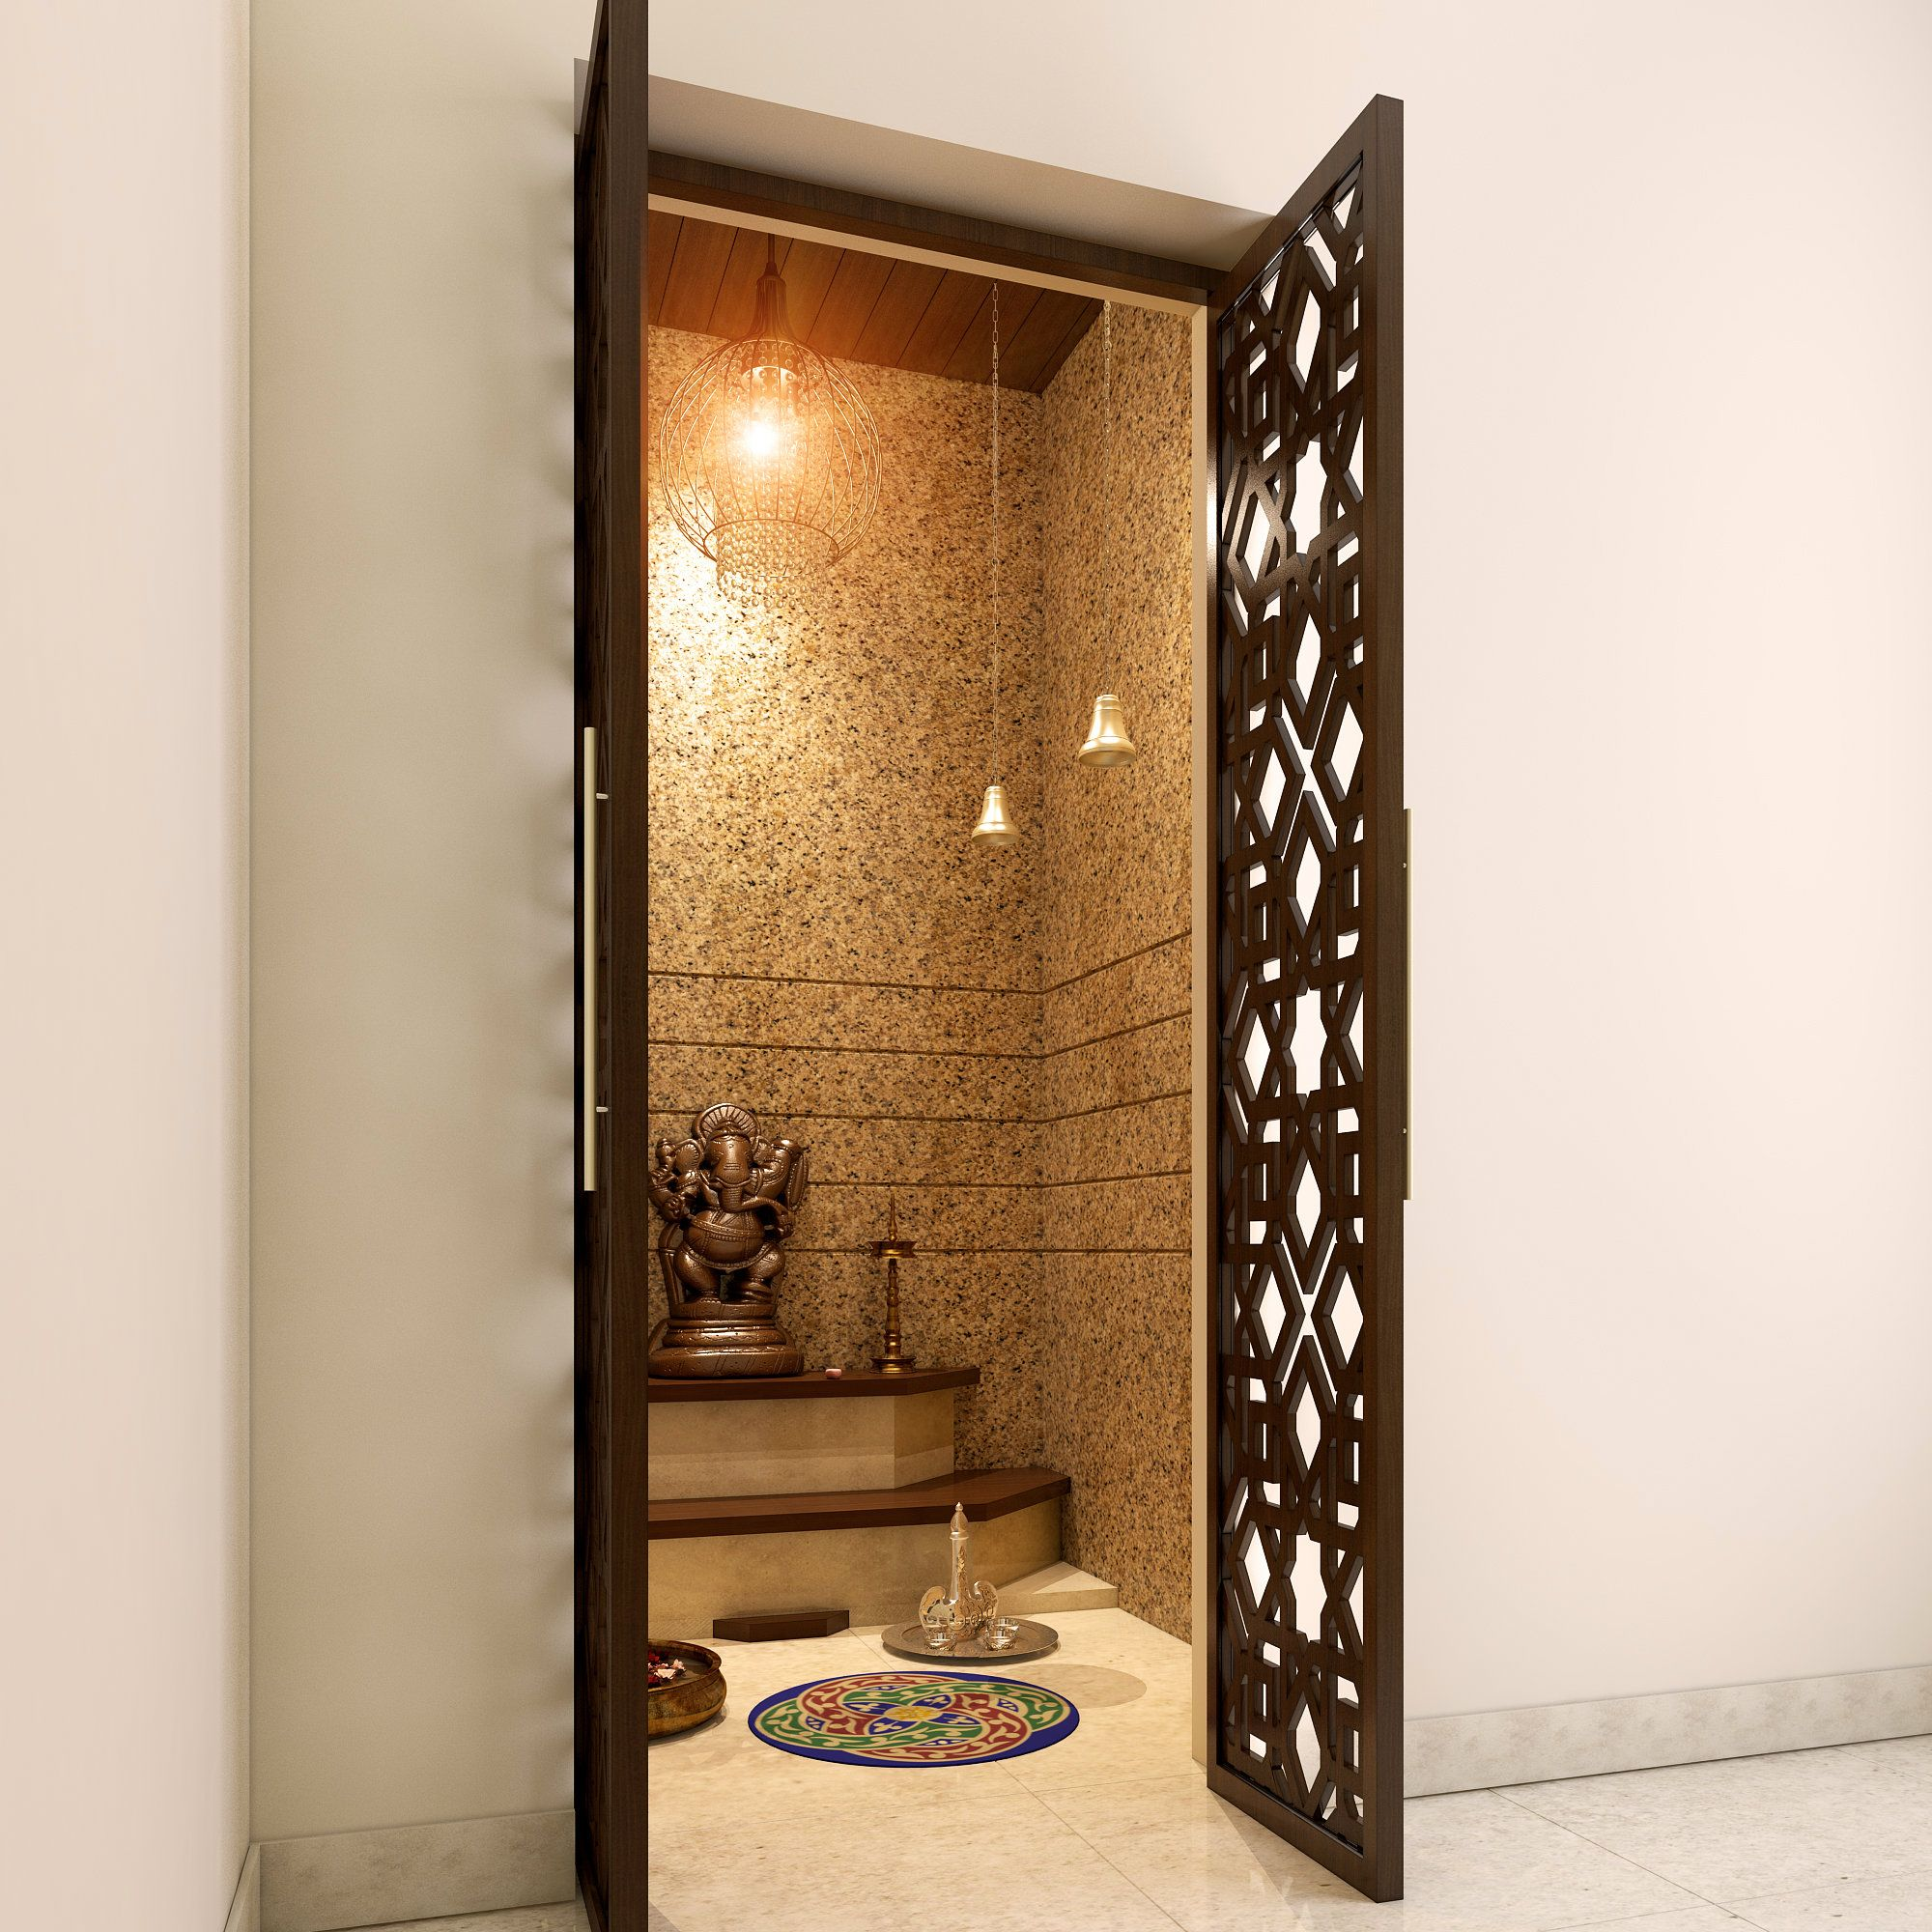 Best Kitchen Gallery: Lattice Doors That Make Your Pooja Room Look More Attractive of Pooja Room Designs on rachelxblog.com